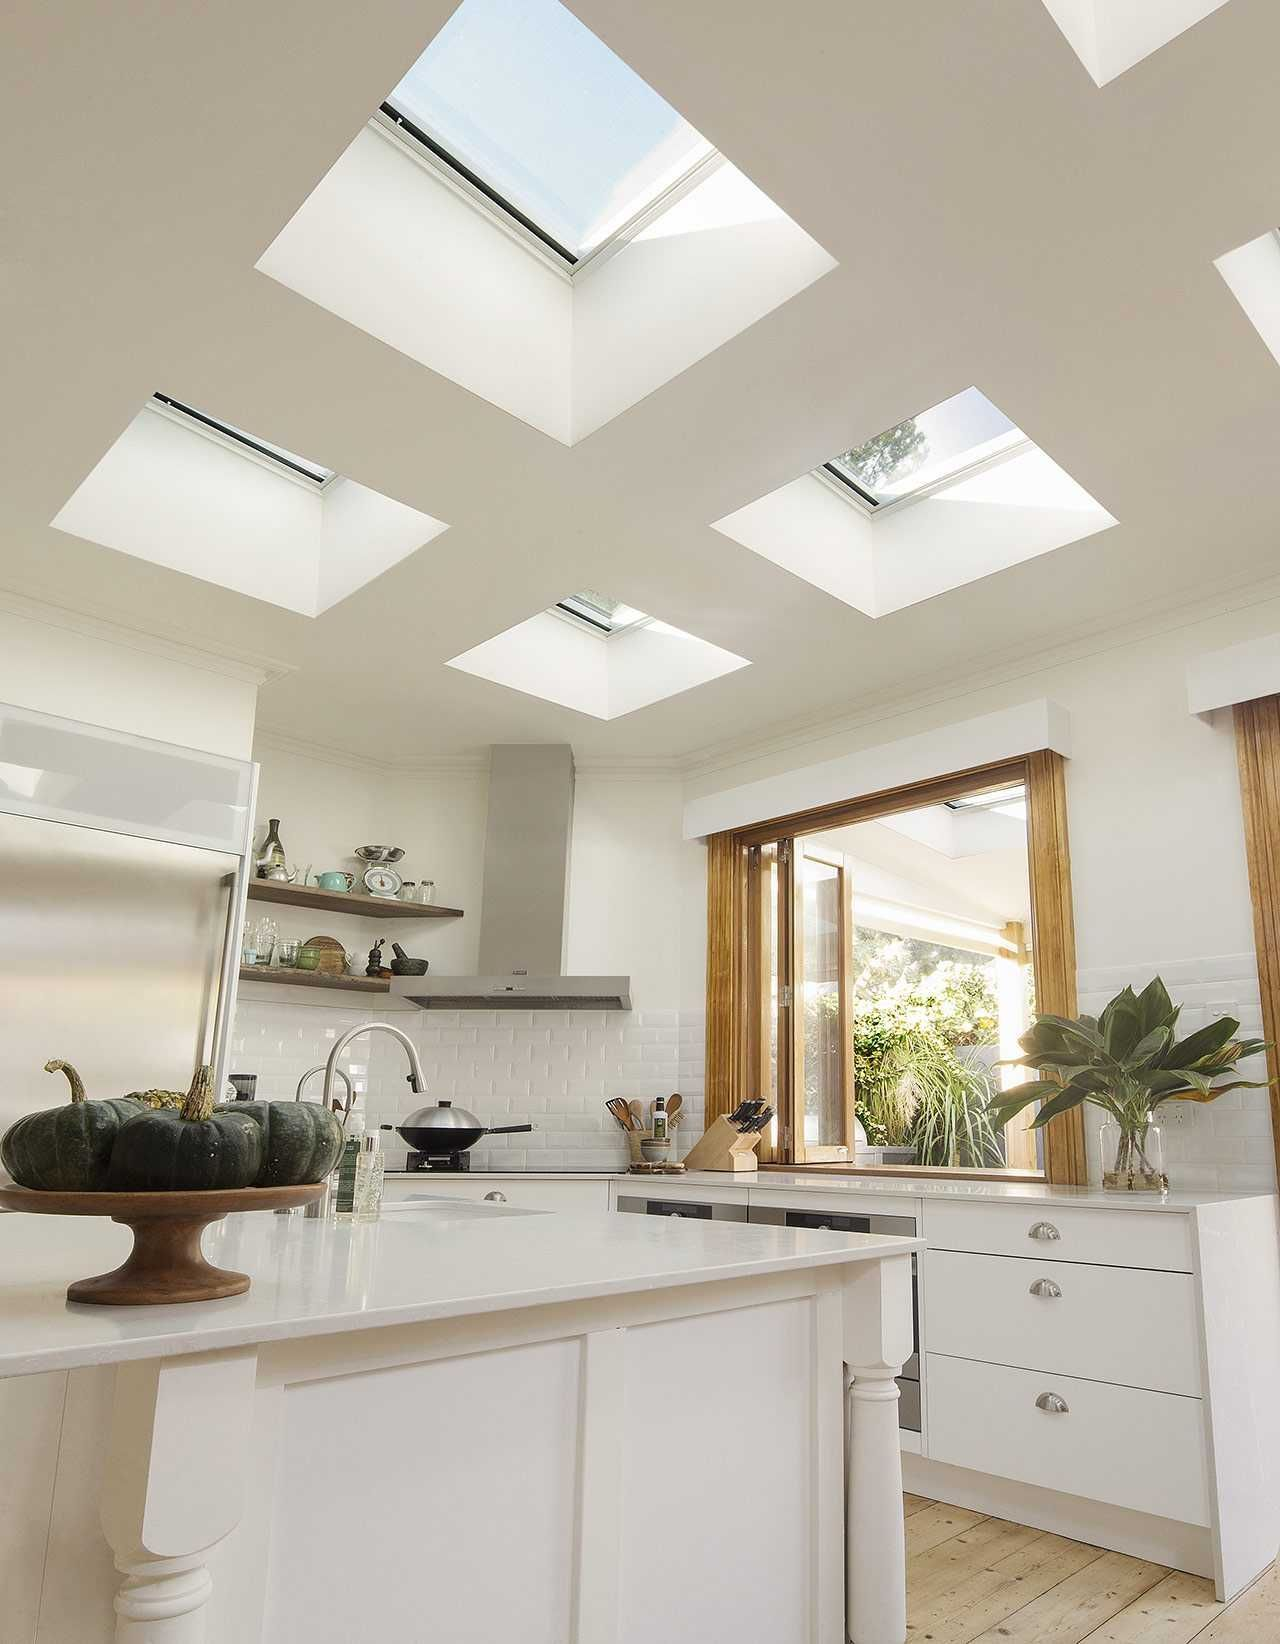 Skylight Ideas To Make Your Space Brighter Best Of Skylight Ideas To Make Your Space Brighter Want To Skylight Kitchen Skylight Living Room Elegant Kitchens